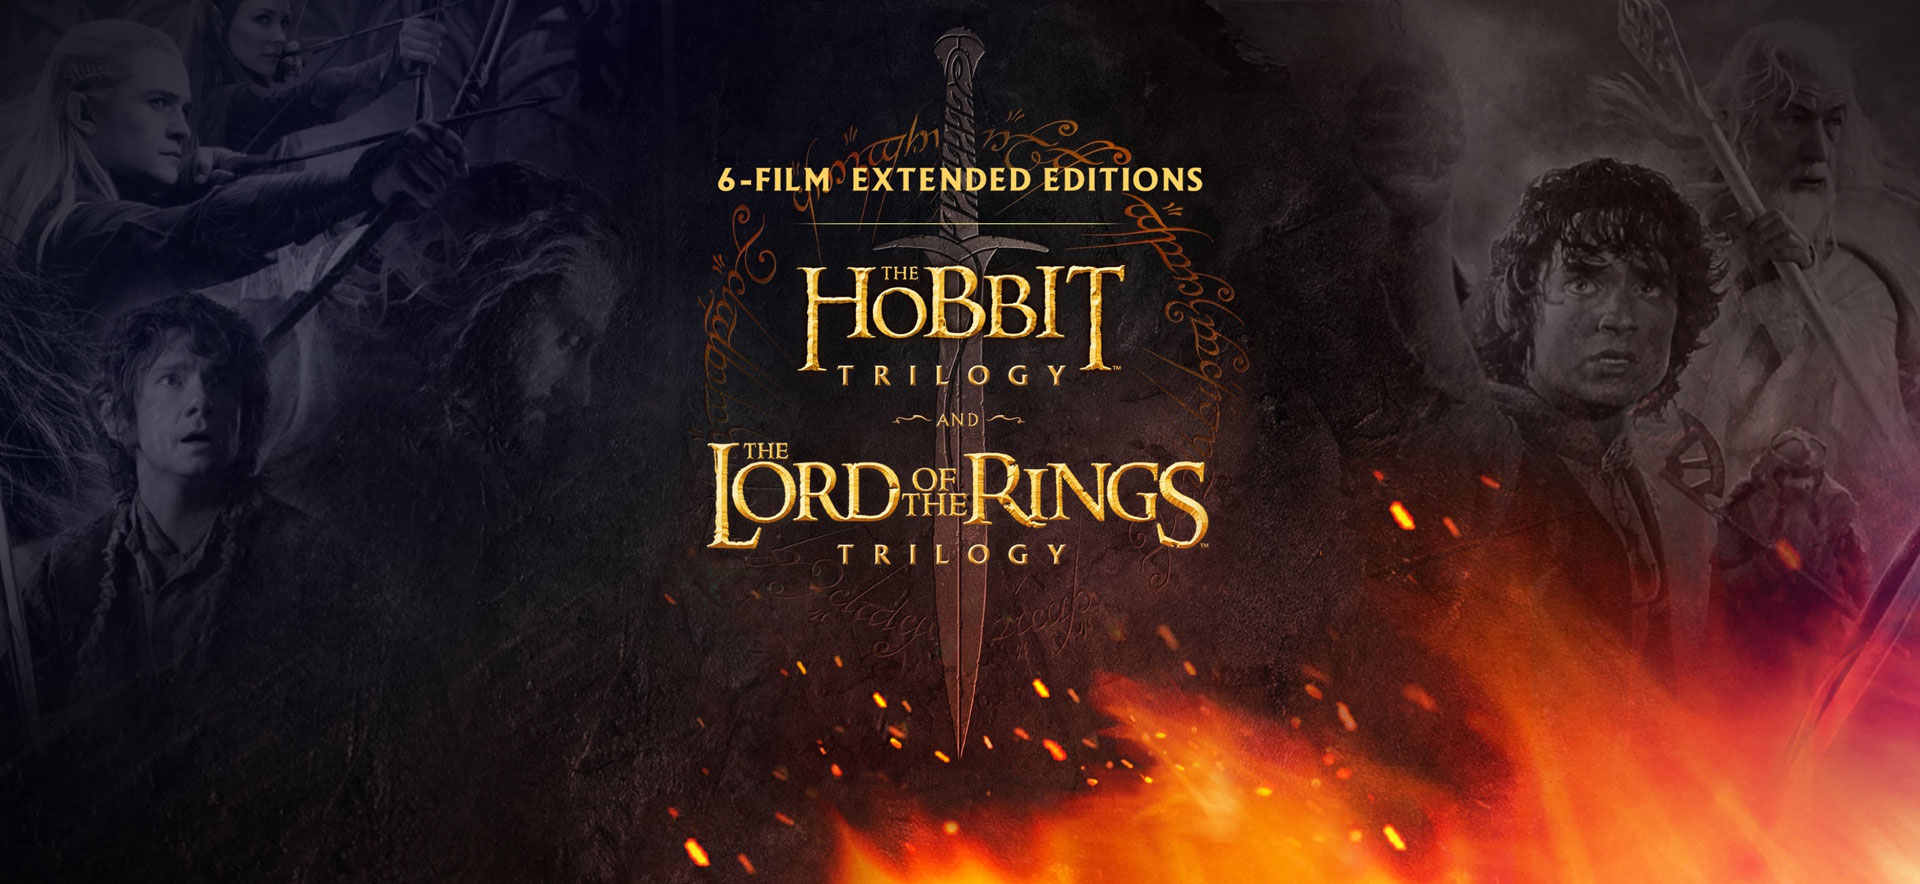 feature image for The Lord of The Rings and The Hobbit 6 Film collection